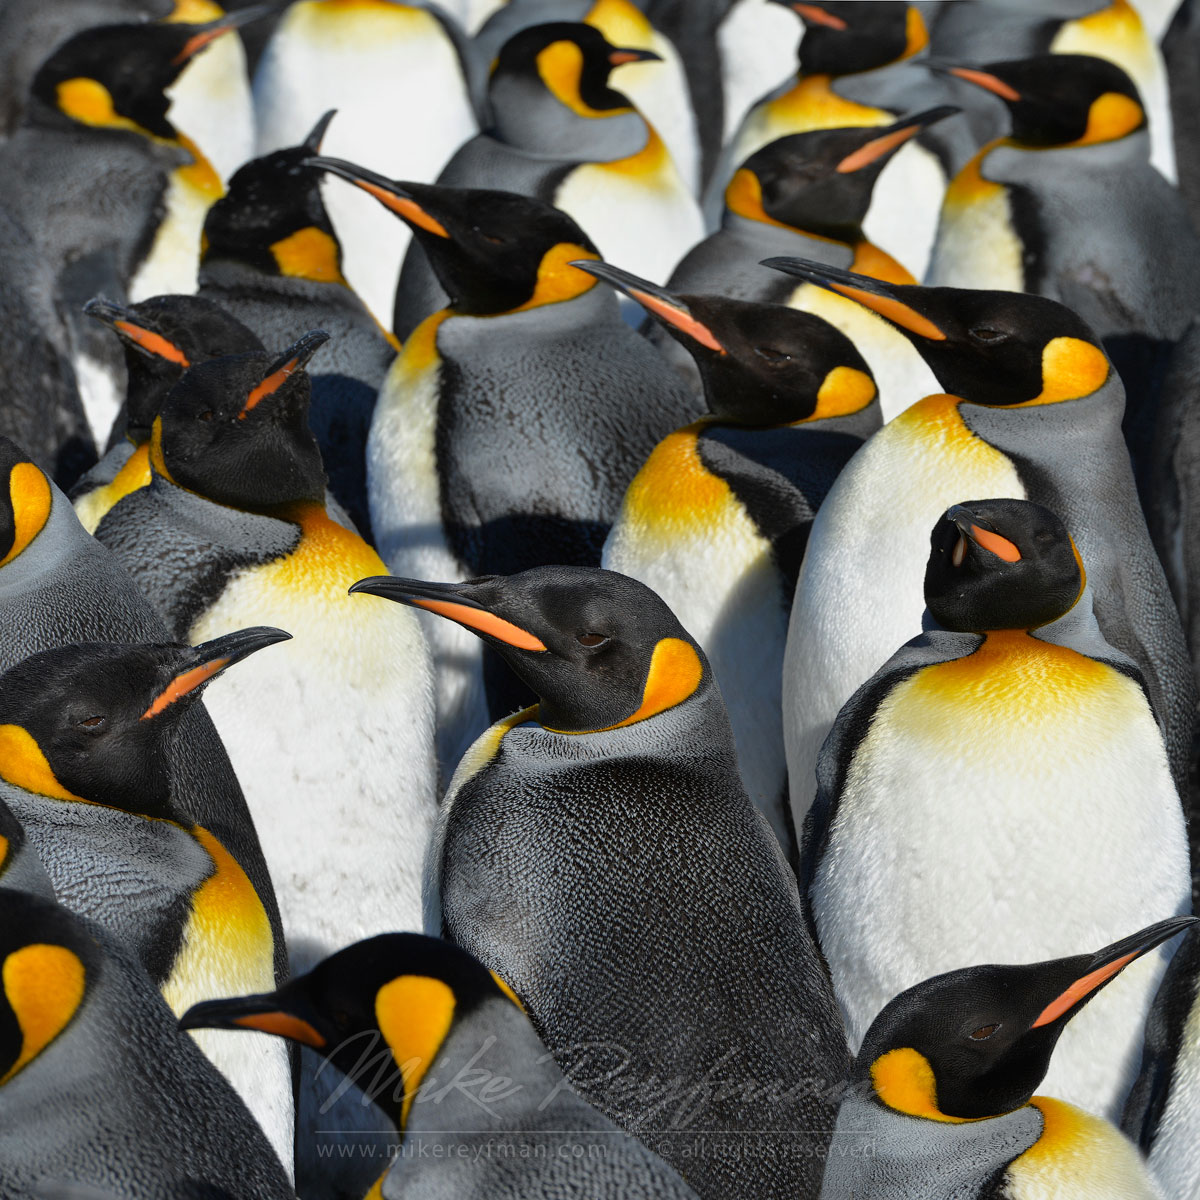 King Penguin (Aptenodytes patagonicus) Colony, Salisbury Plain, South Georgia, Sub-Antarctic - King-Penguins-South-Georgia-Sub-Antarctic - Mike Reyfman Photography